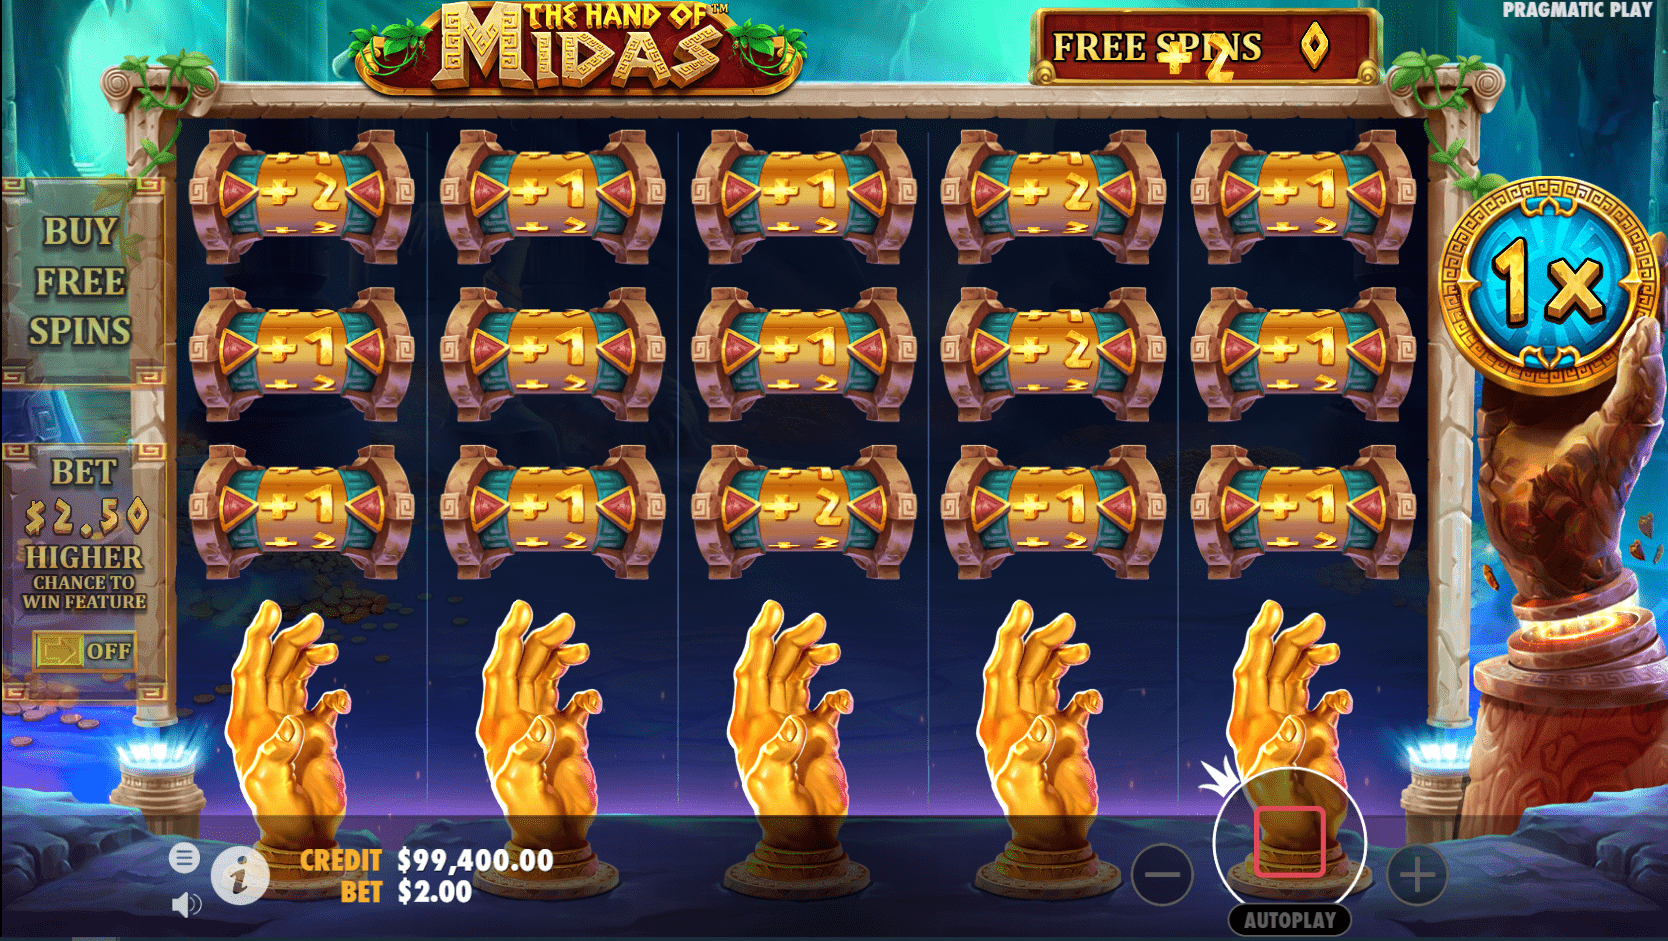 The Hand of Midas Video Slot Mini Game